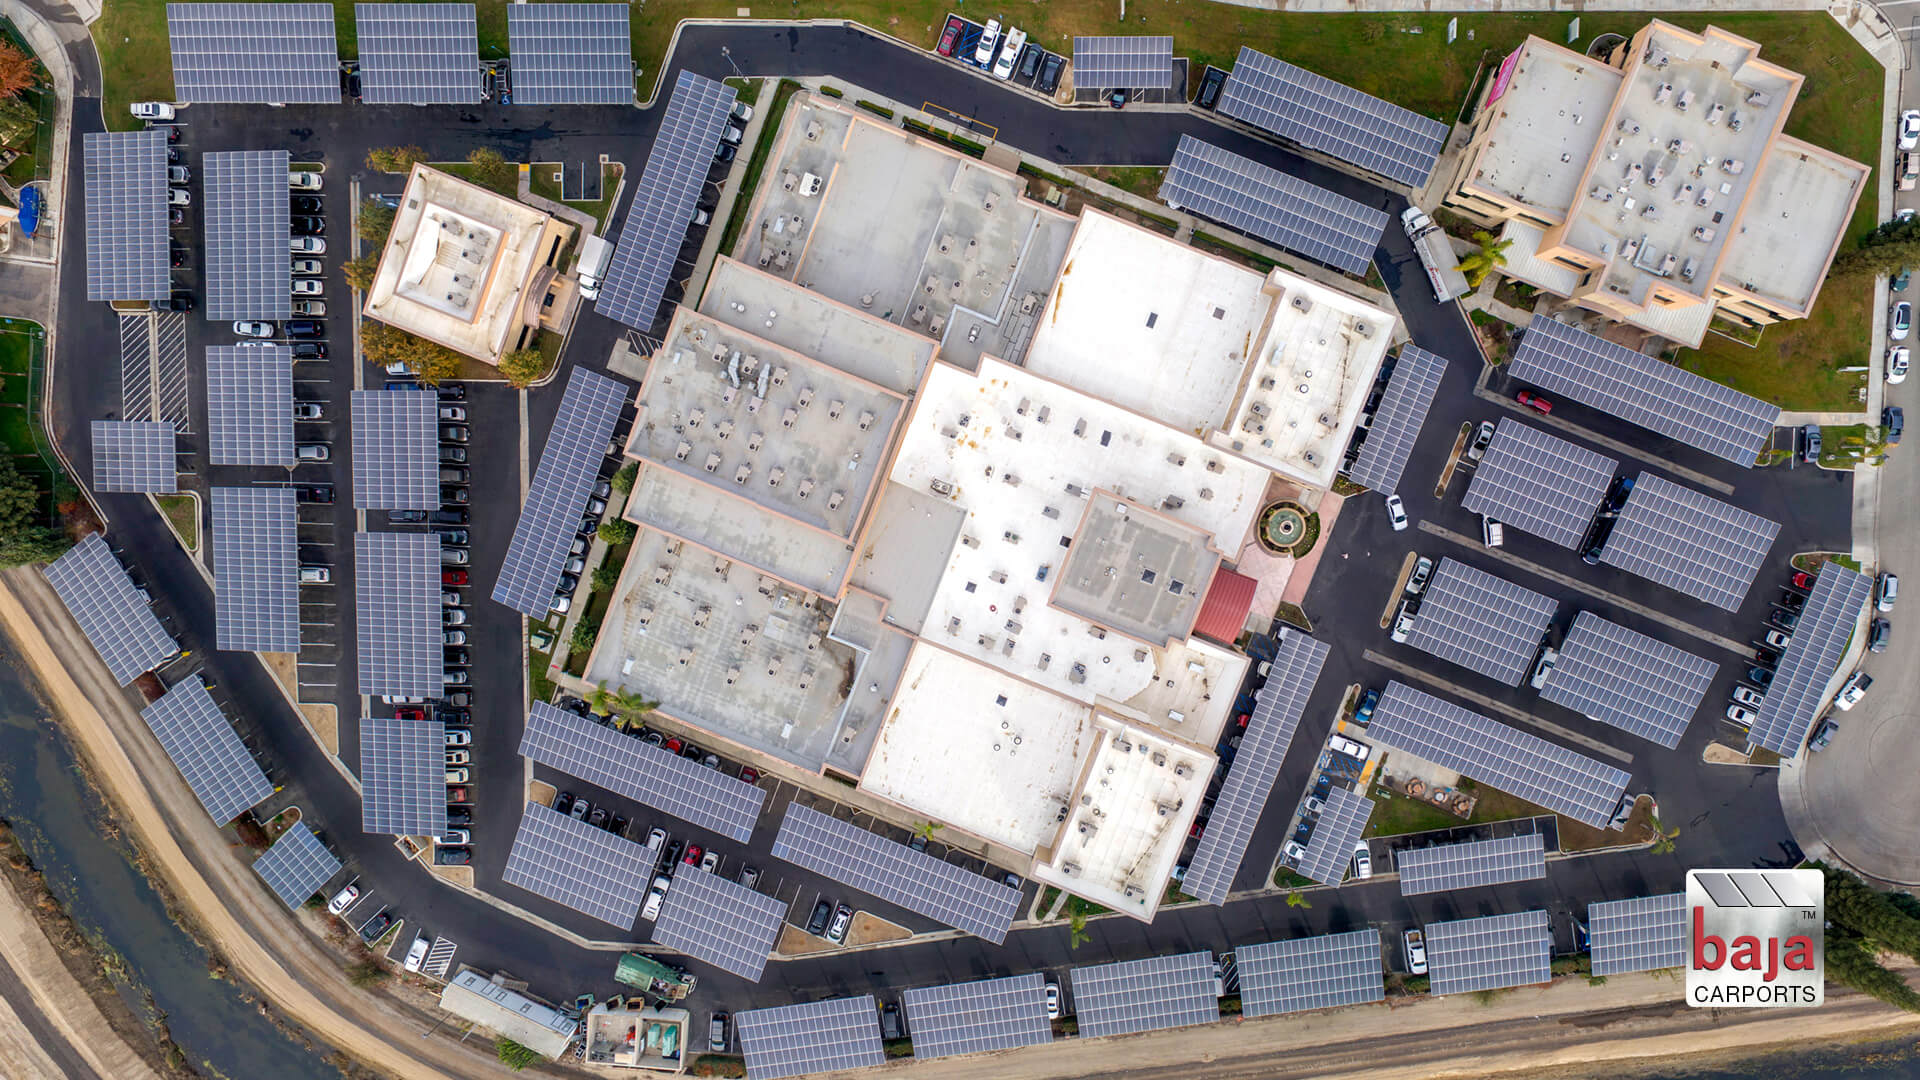 stunning aerial comprehensive blood and cancer center bakersfield california solar carports installed by baja carports